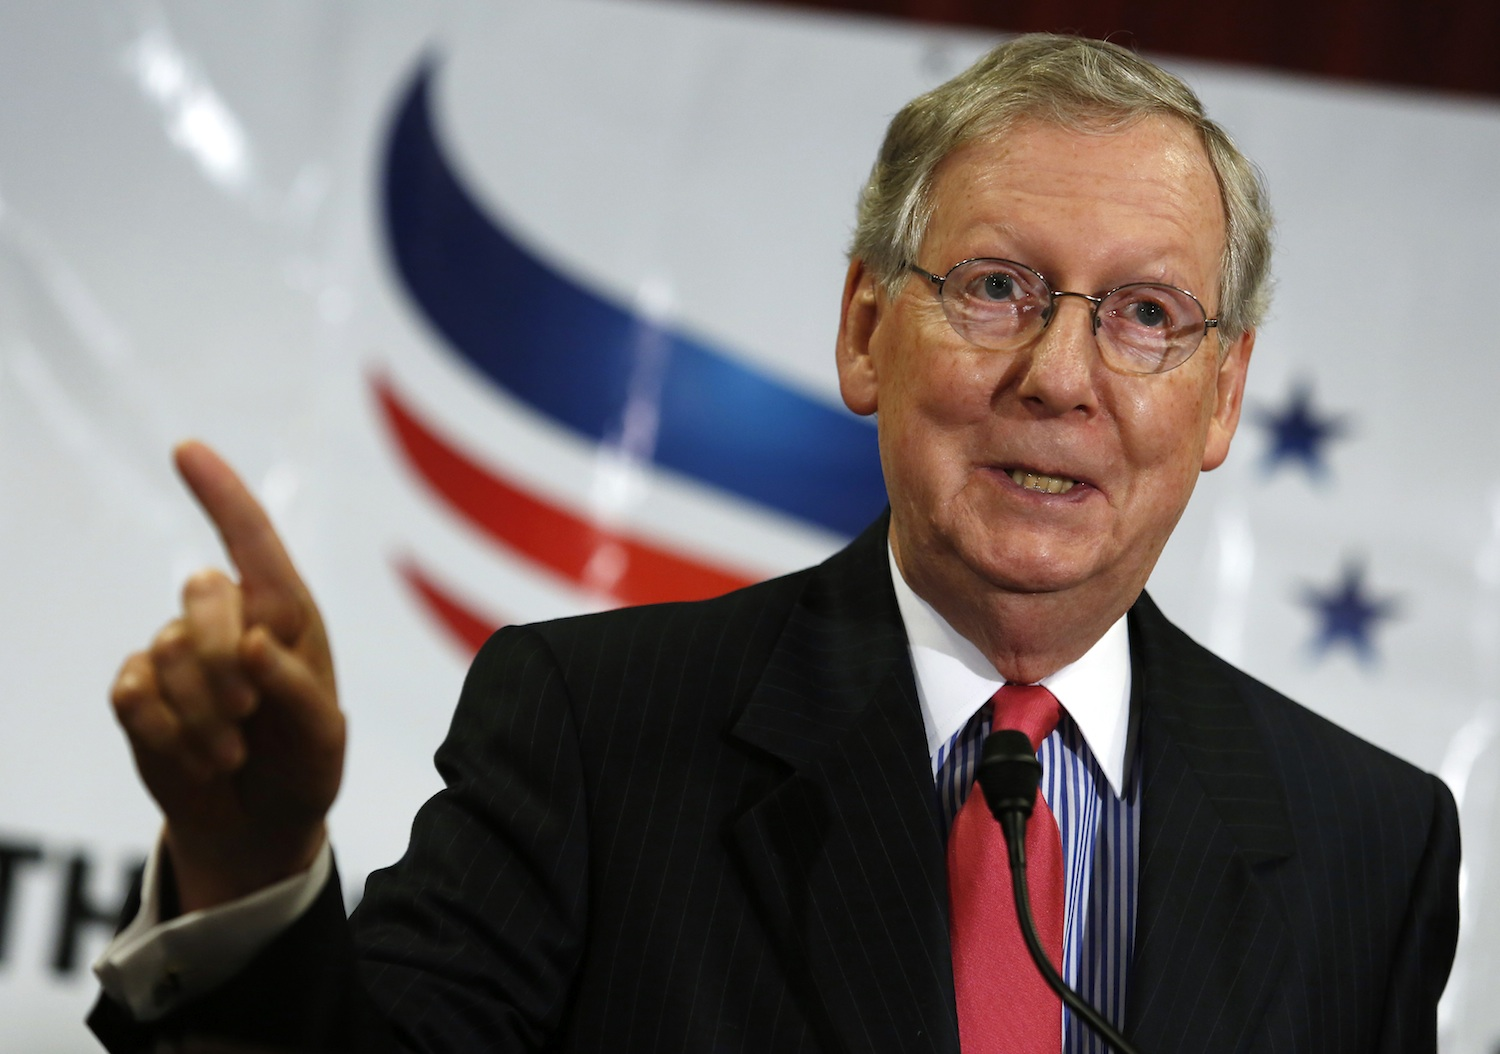 mitch mcconnell - photo #29